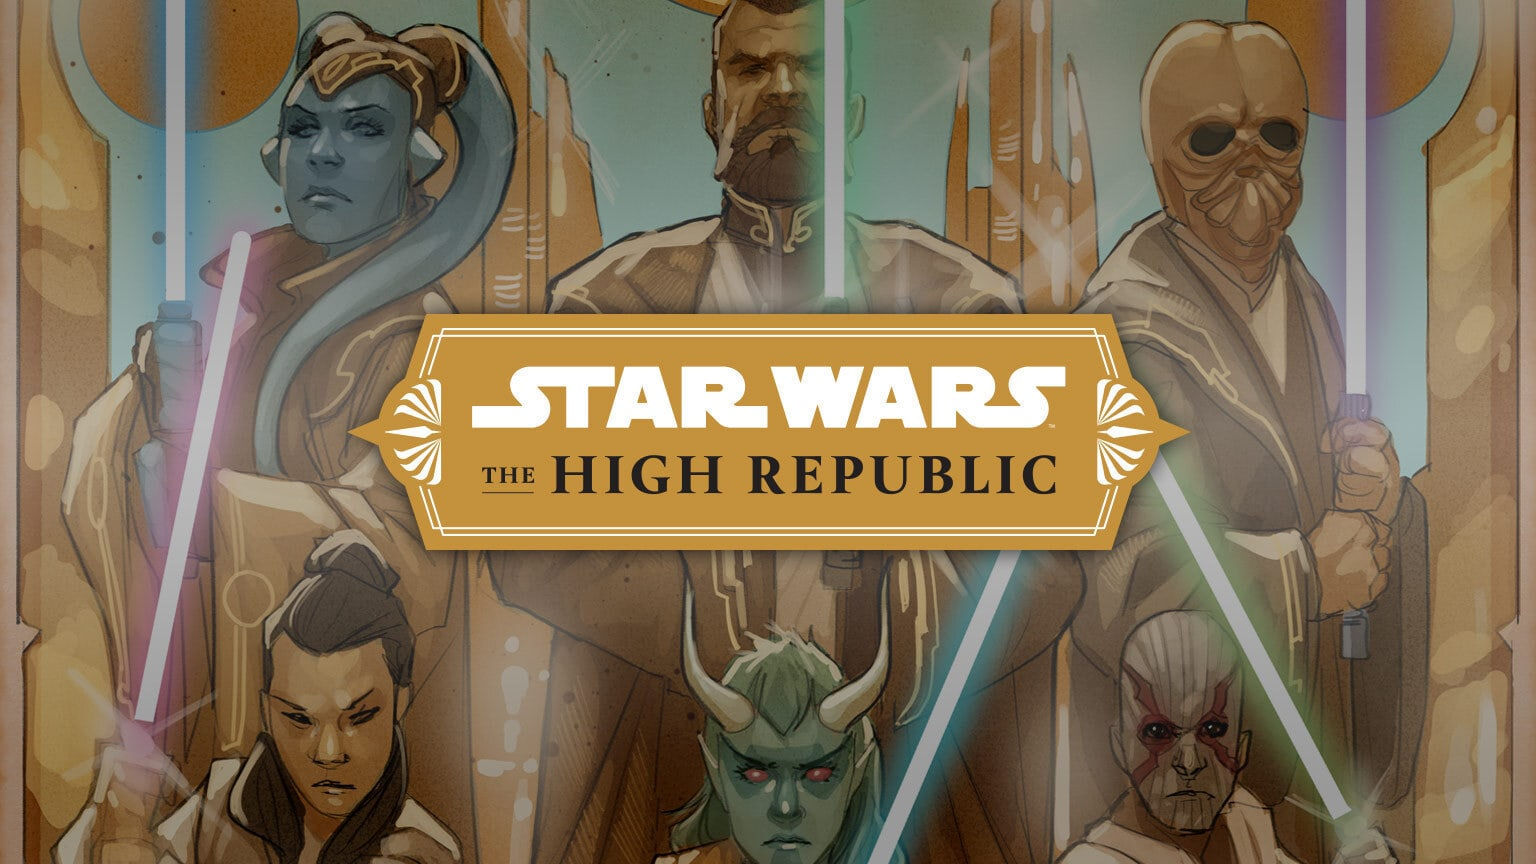 Star Wars: The High Republic Sees Revised Release Dates